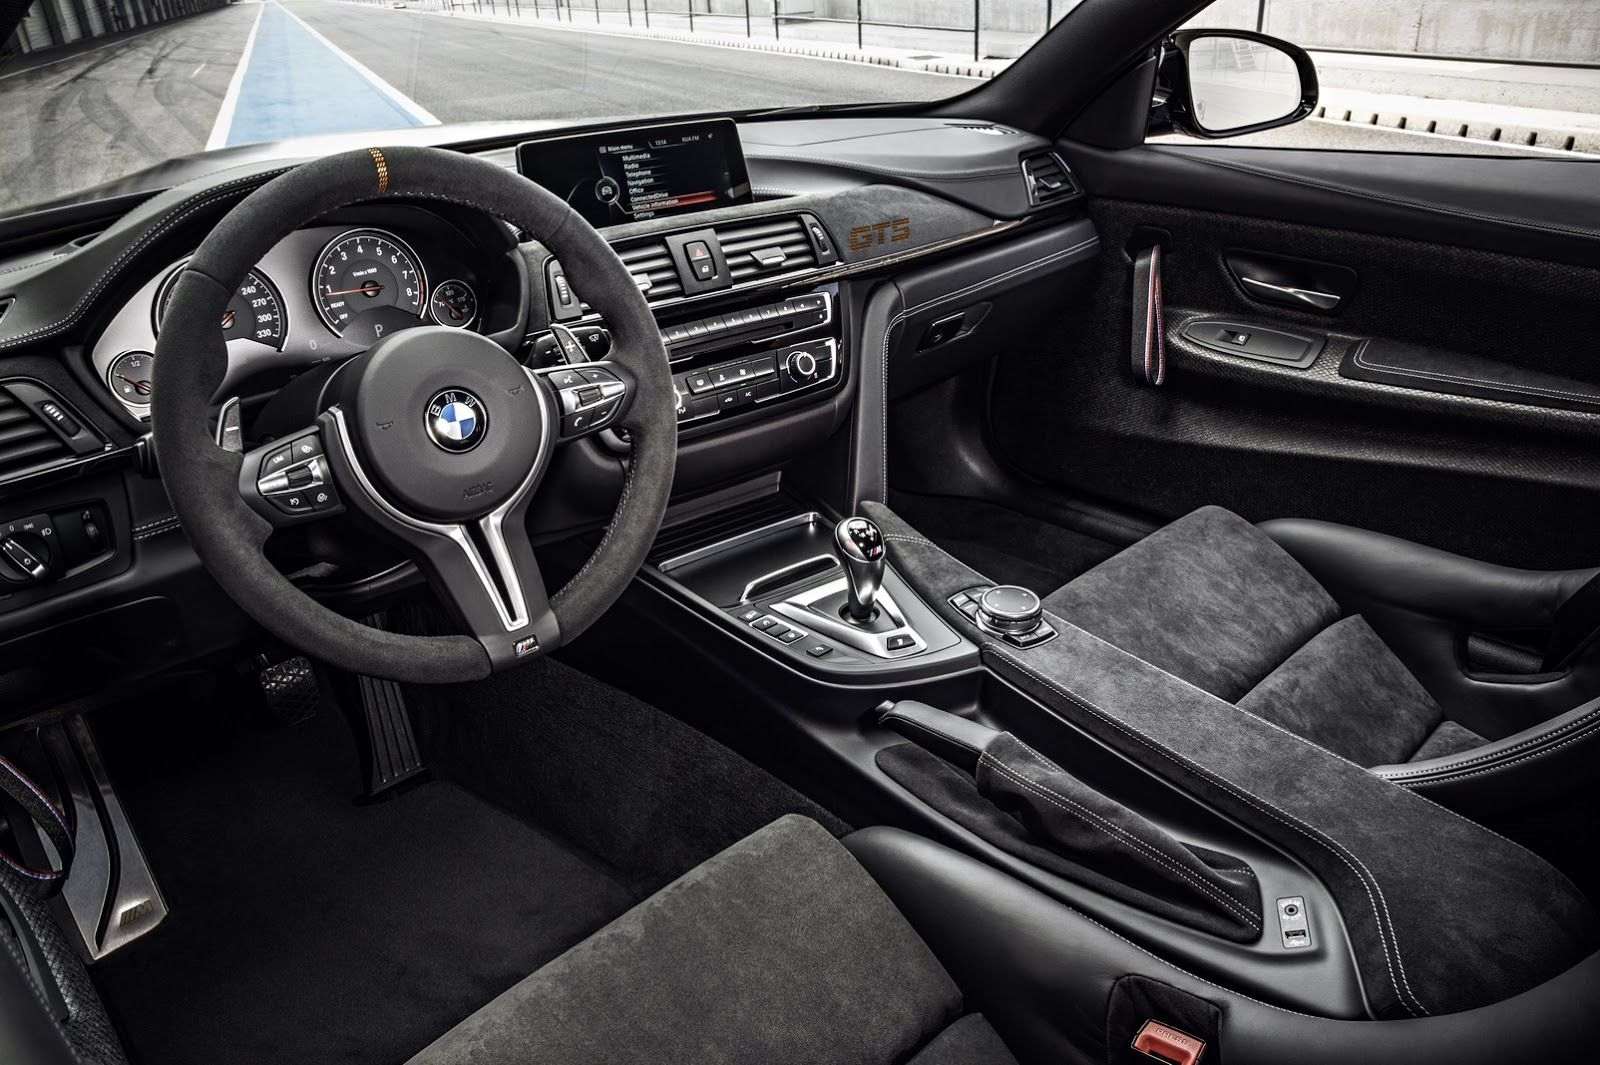 2016 Bmw M4 Gts Concept And Performance Interior View